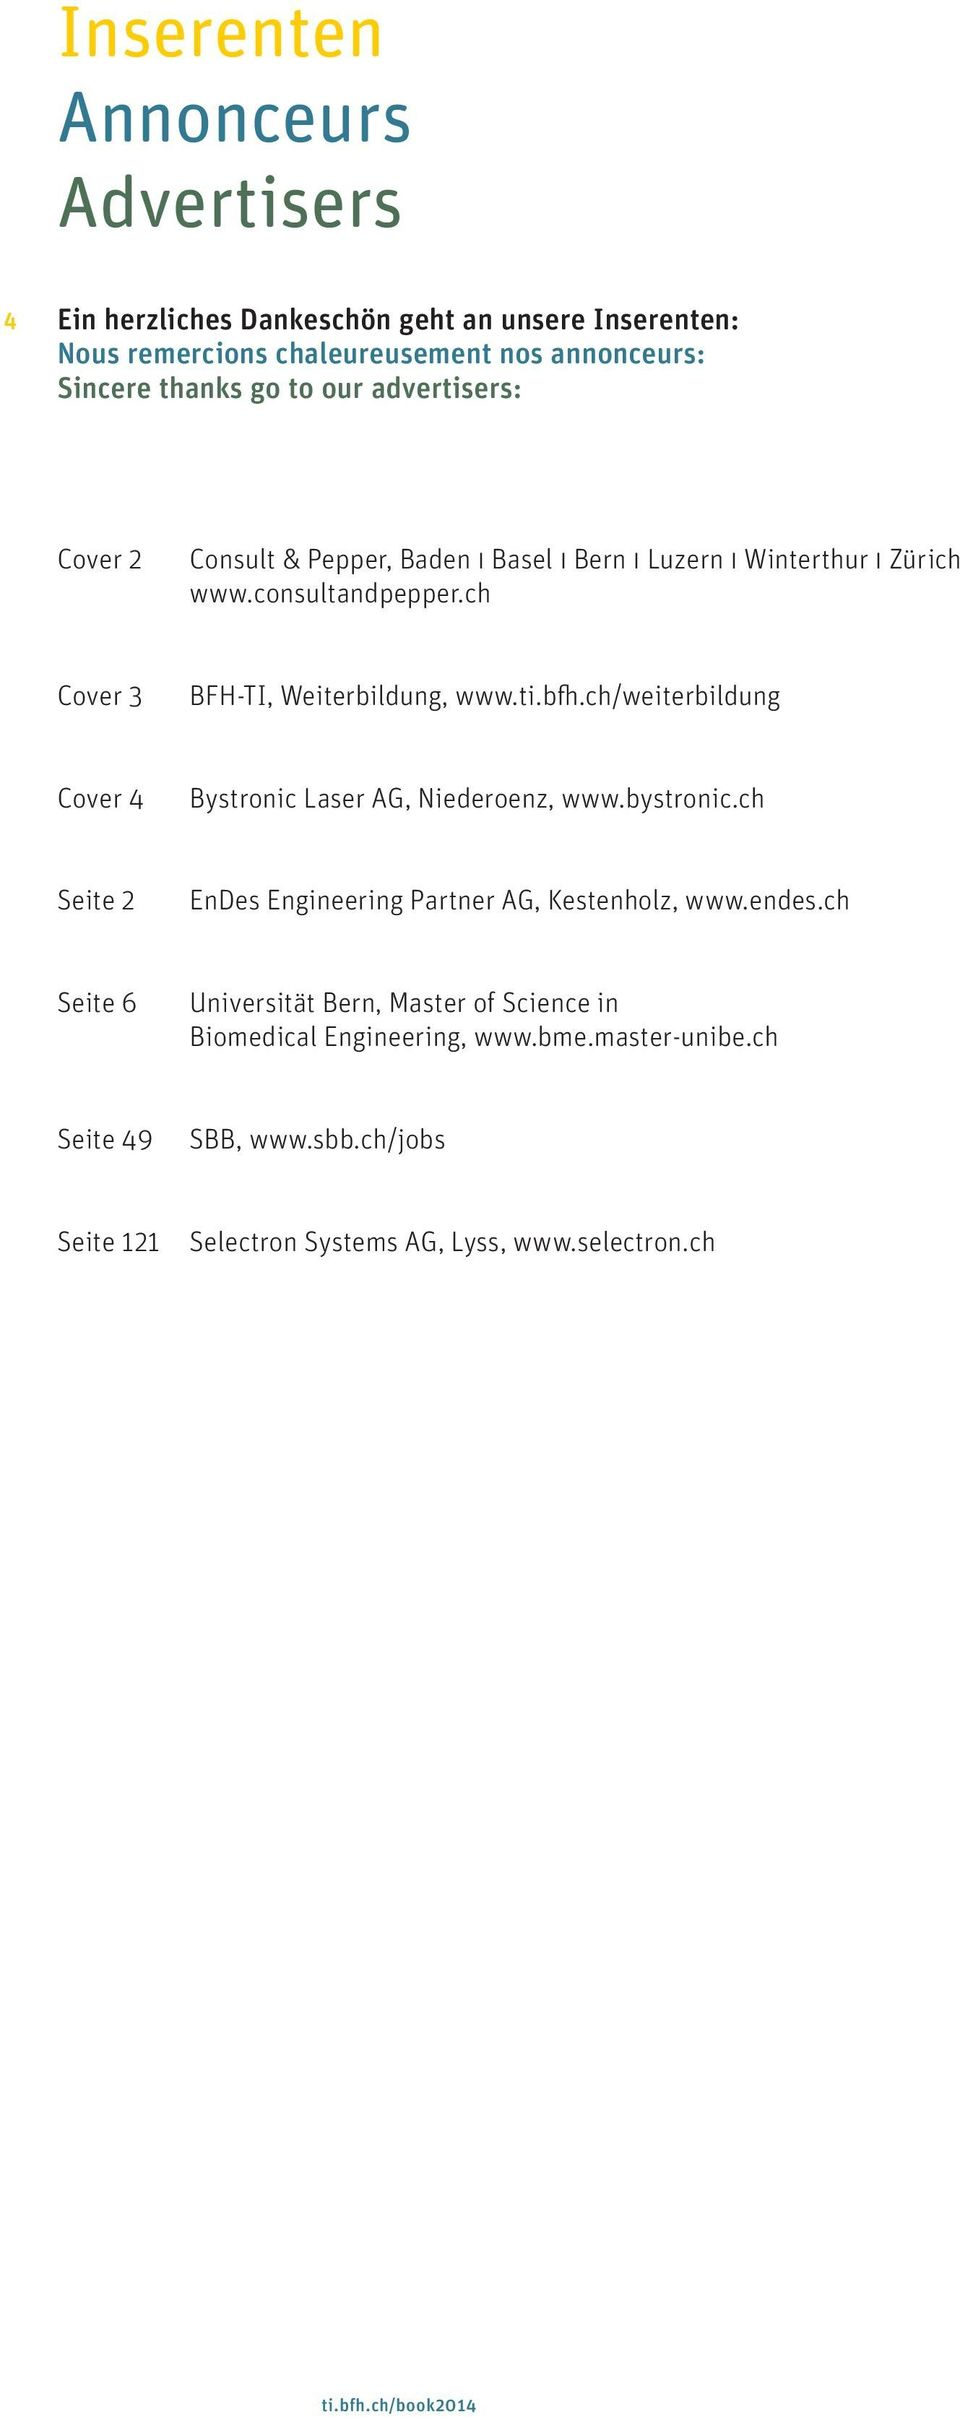 ch/weiterbildung Cover 4 Bystronic Laser AG, Niederoenz, www.bystronic.ch Seite 2 EnDes Engineering Partner AG, Kestenholz, www.endes.